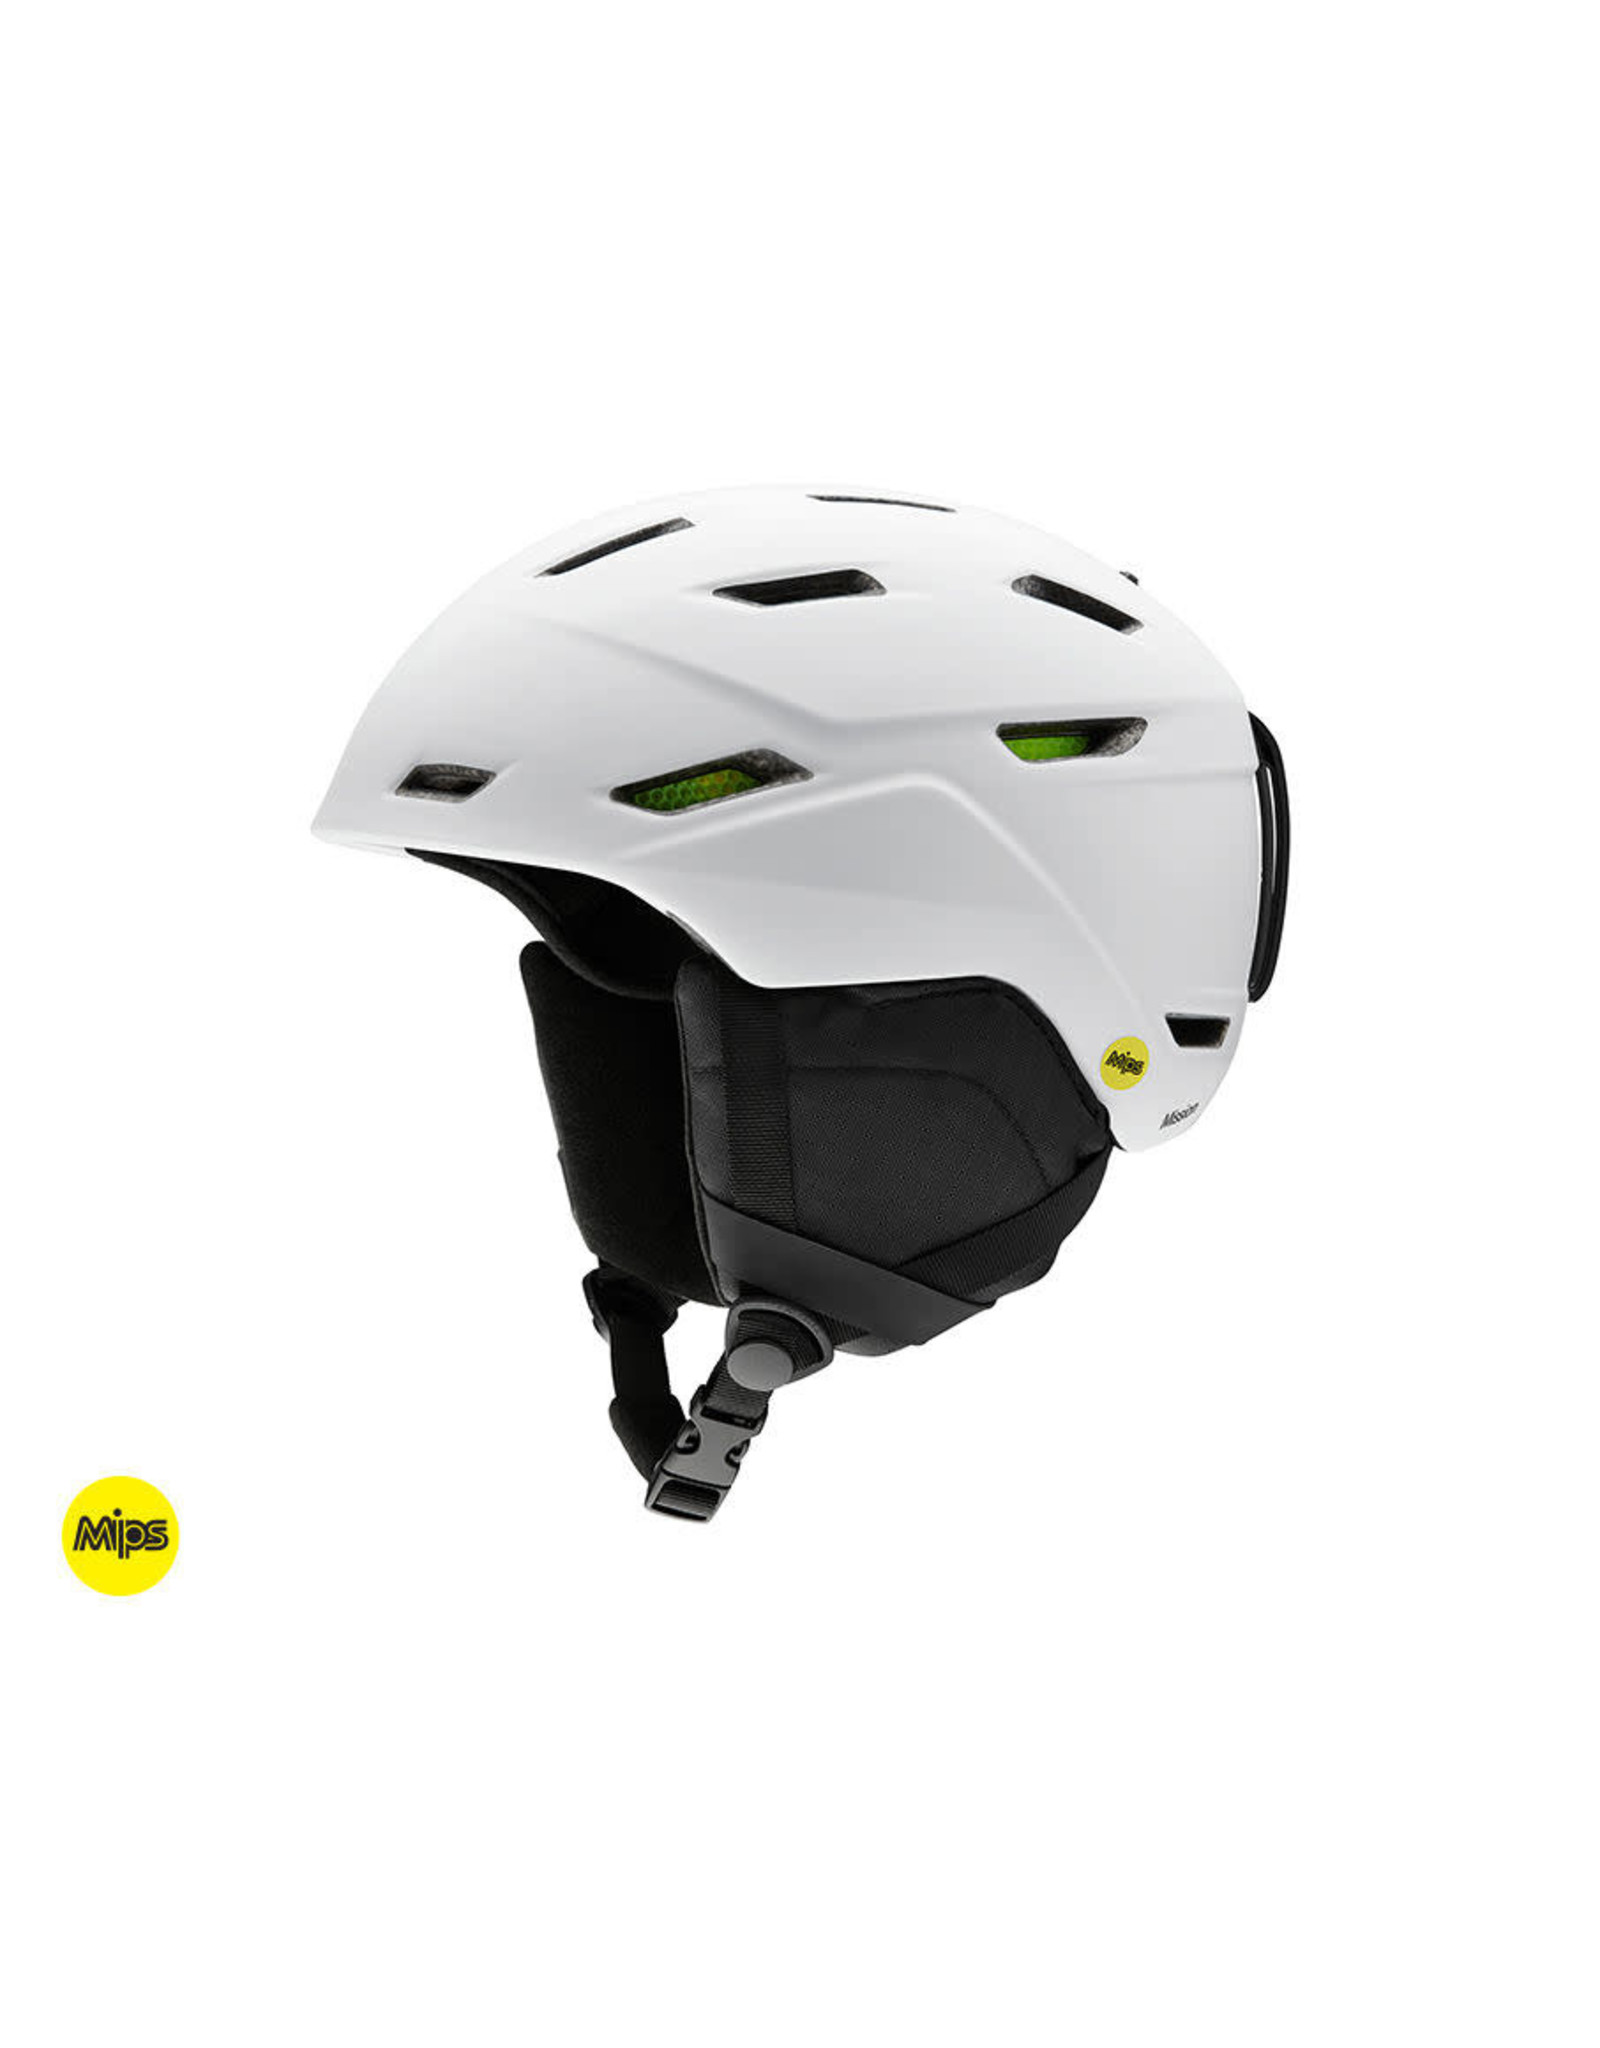 smith optics Smith Mission mips helmet - Matte white - Large 59-63 cm